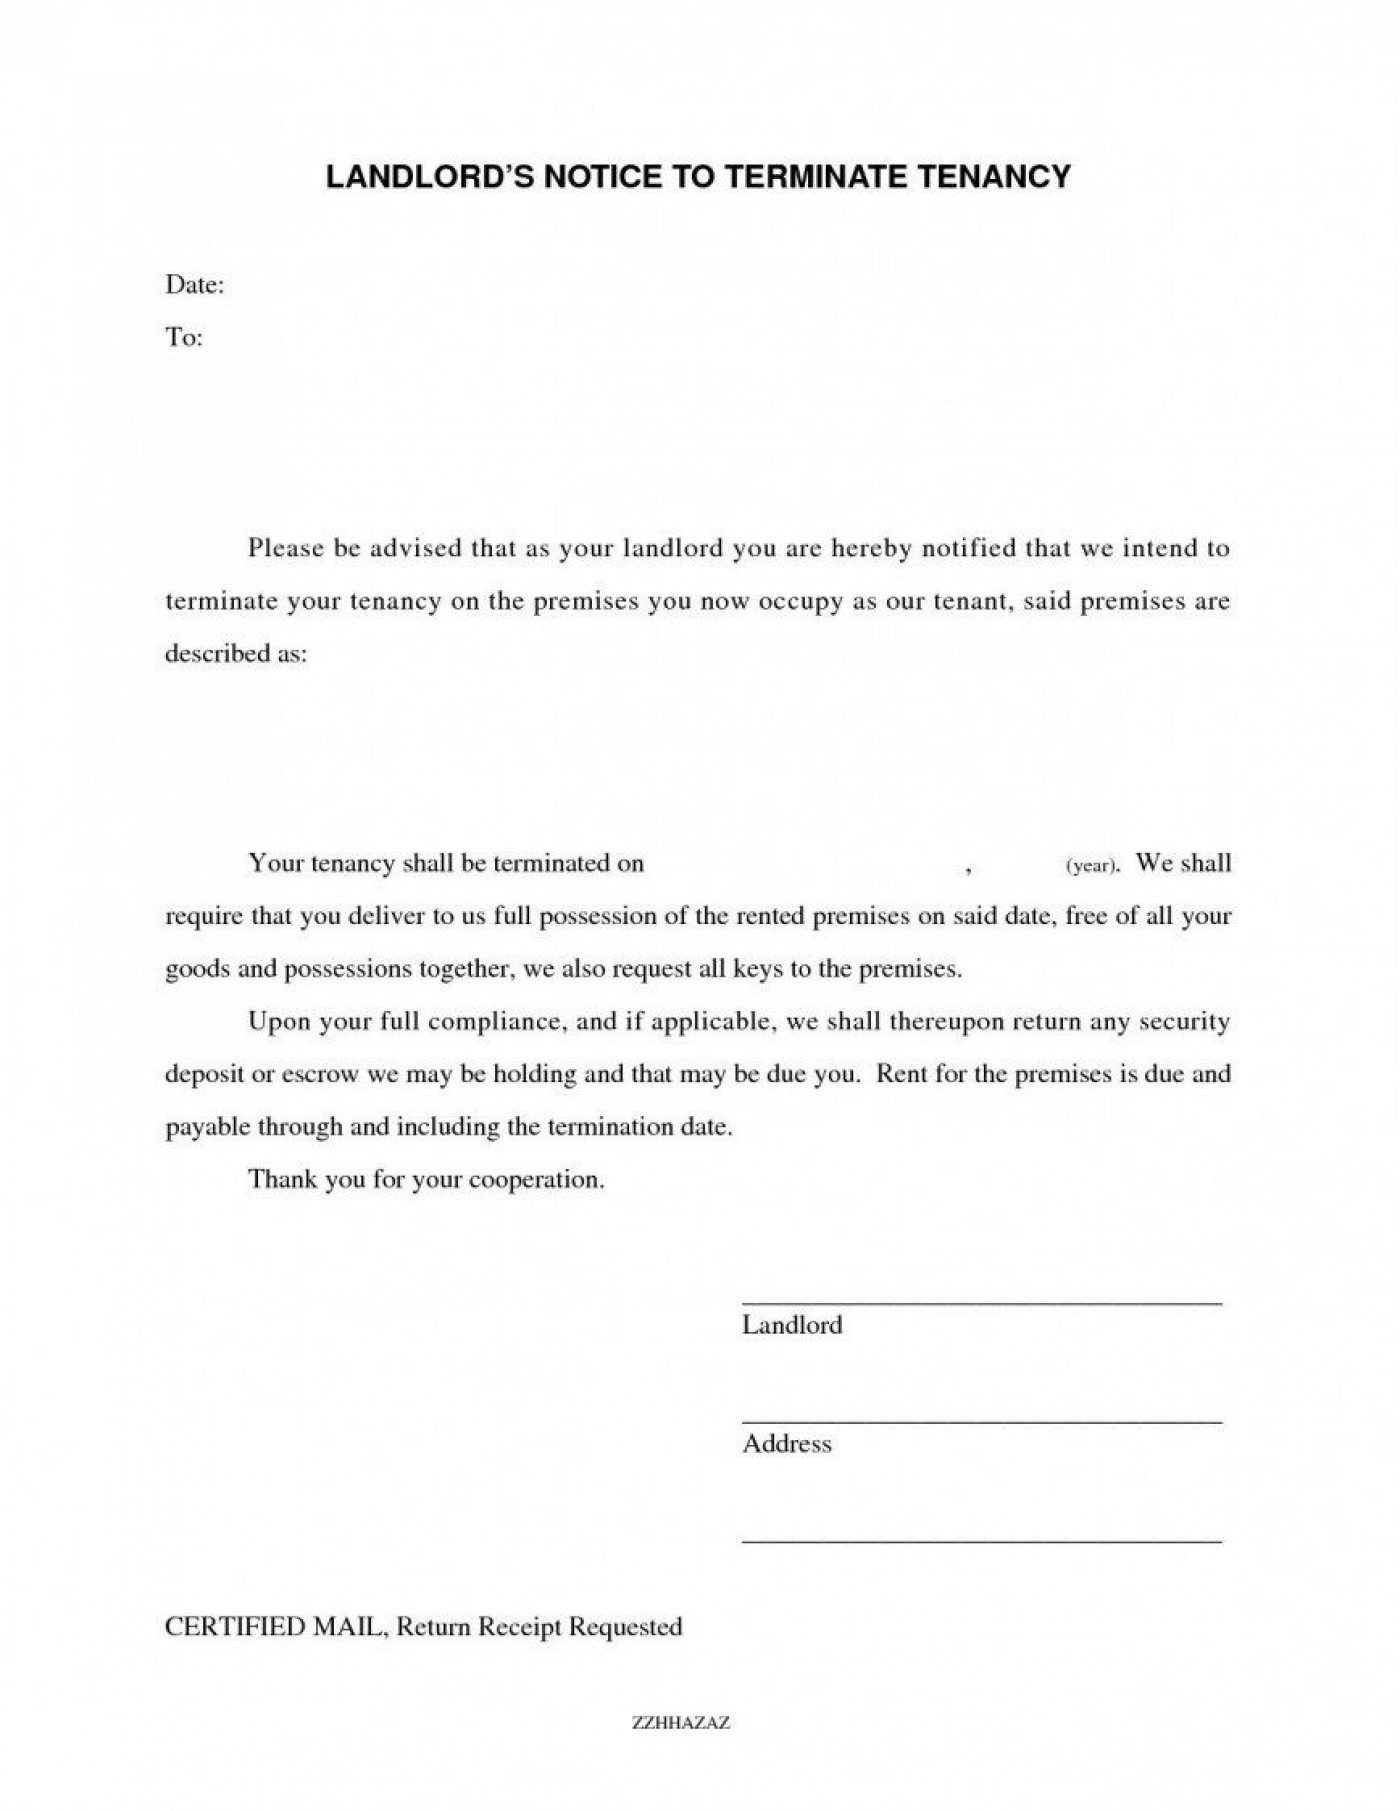 008 Frightening Template Letter To Terminate Rental Agreement Photo  End Tenancy For Landlord Ending1400